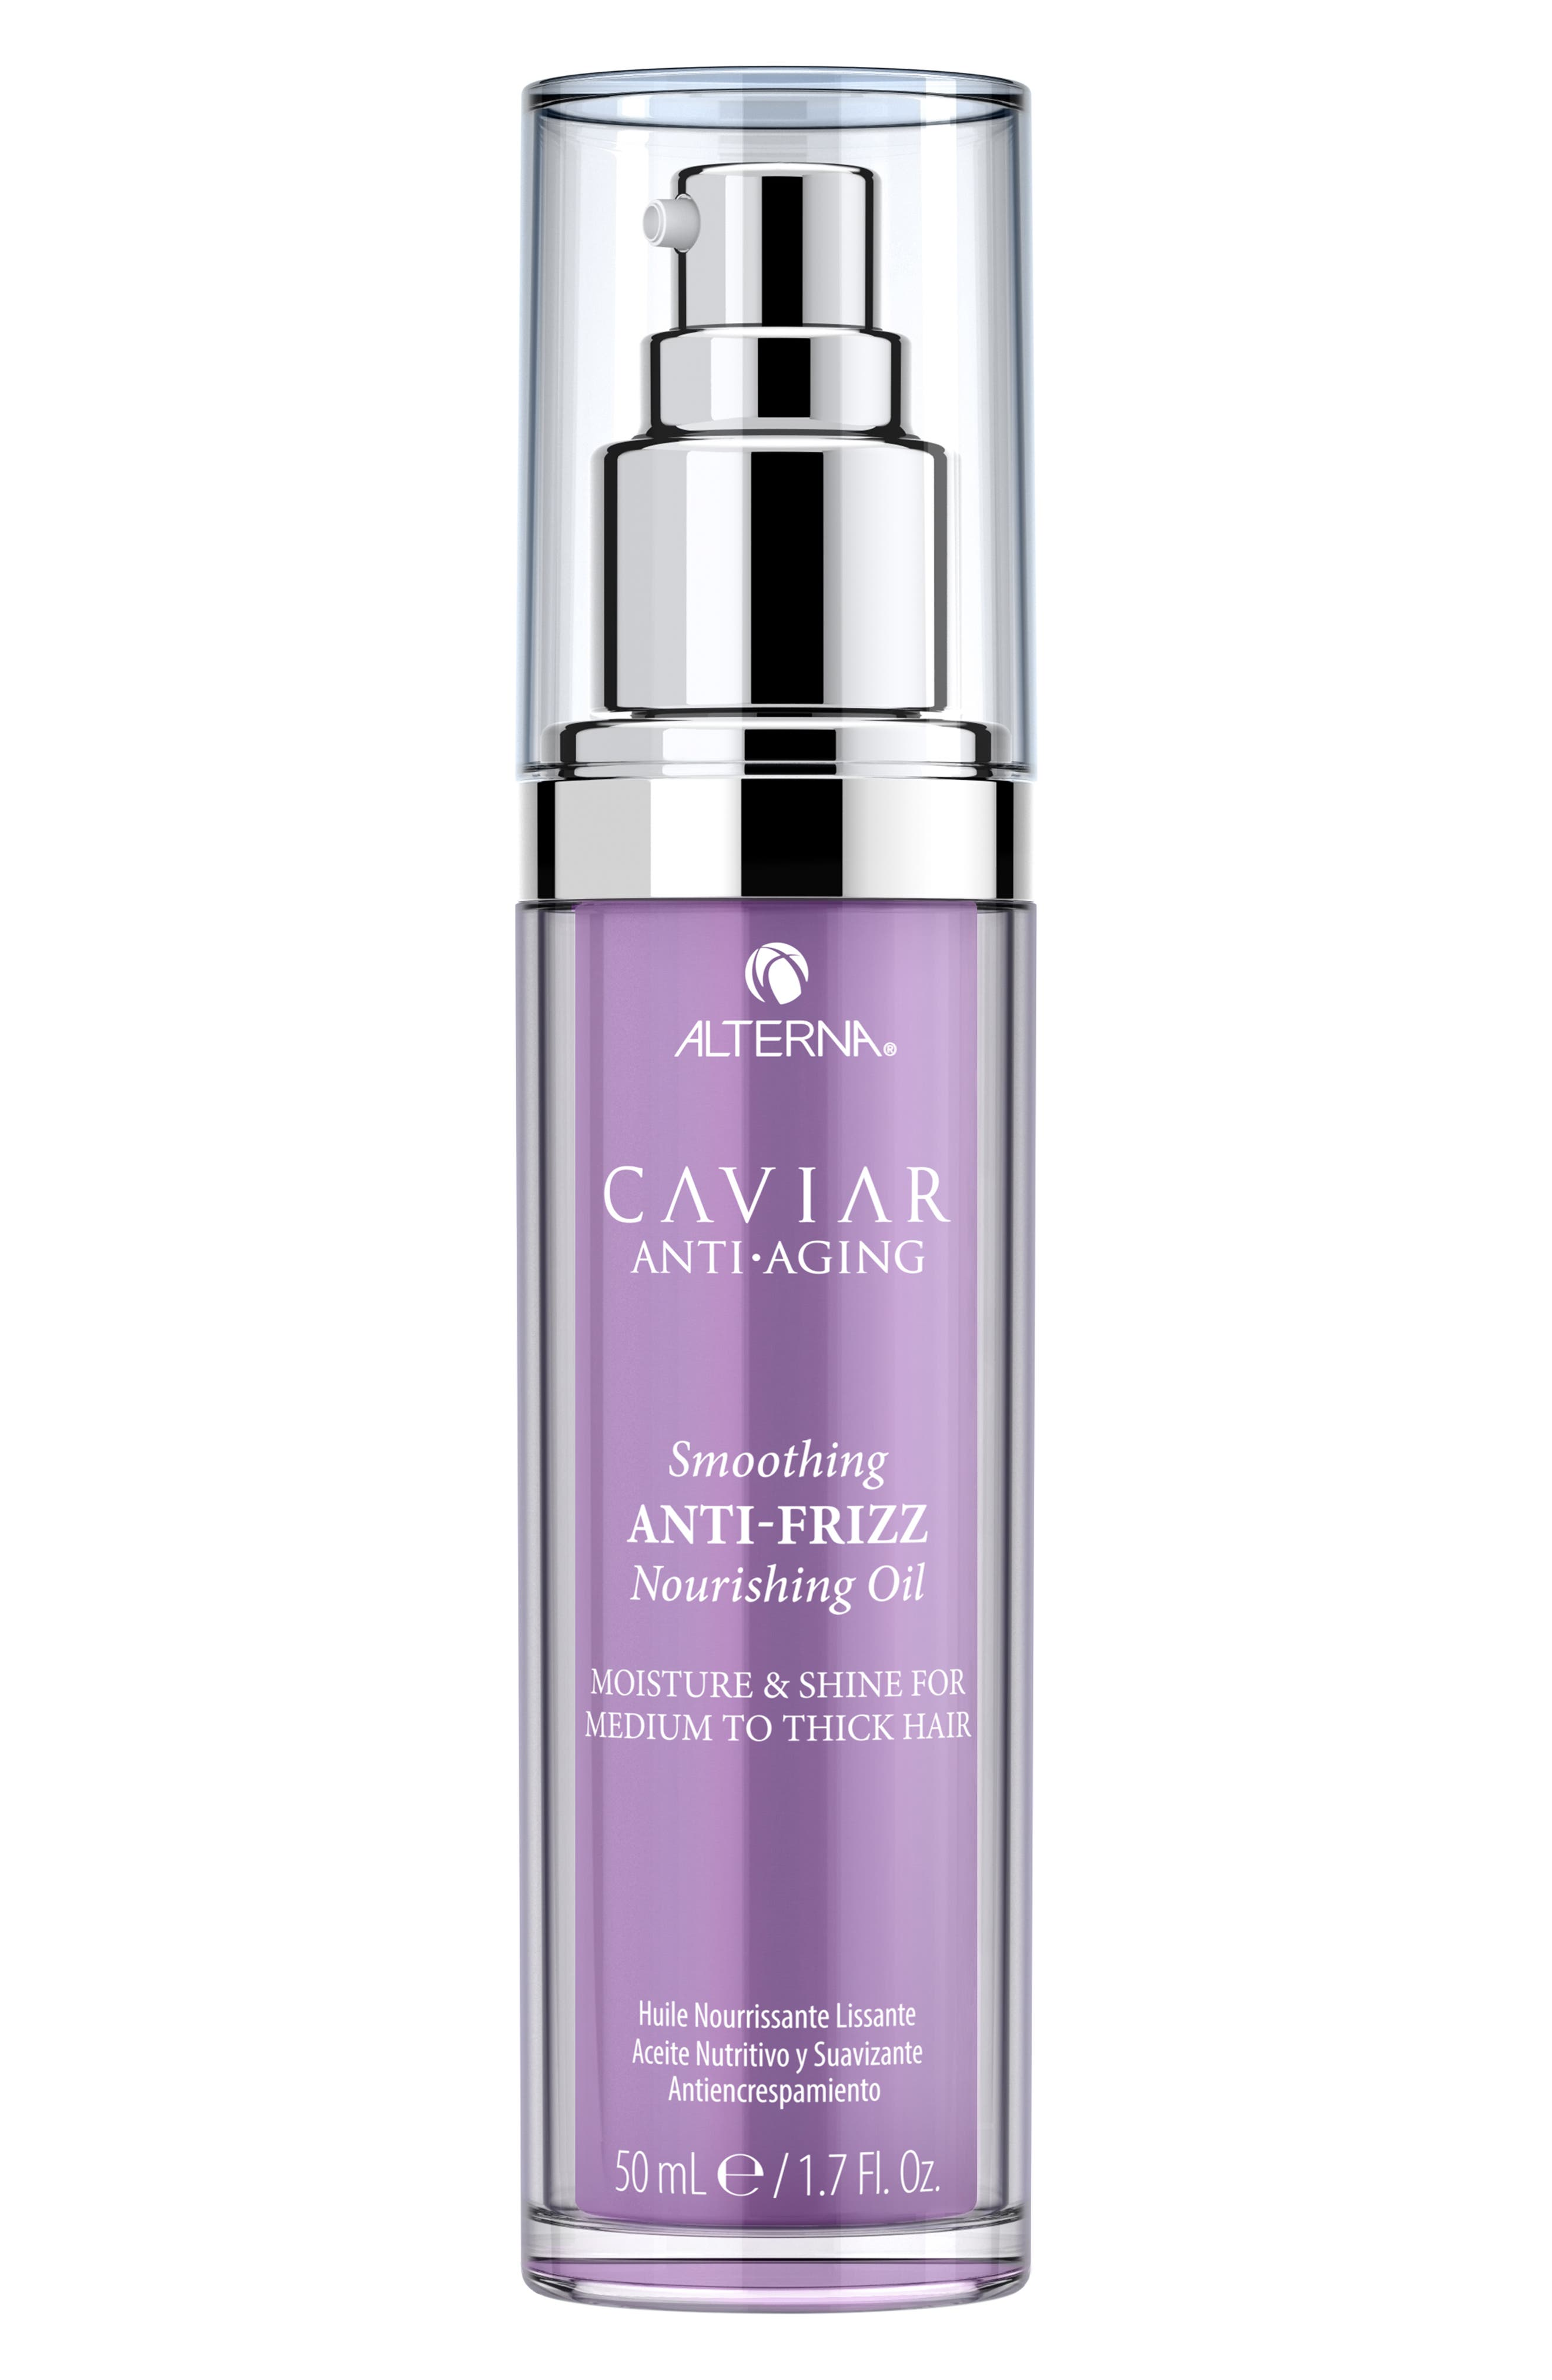 ALTERNA(R) Caviar Anti-Aging Smoothing Anti-Frizz Nourishing Oil in No Color at Nordstrom